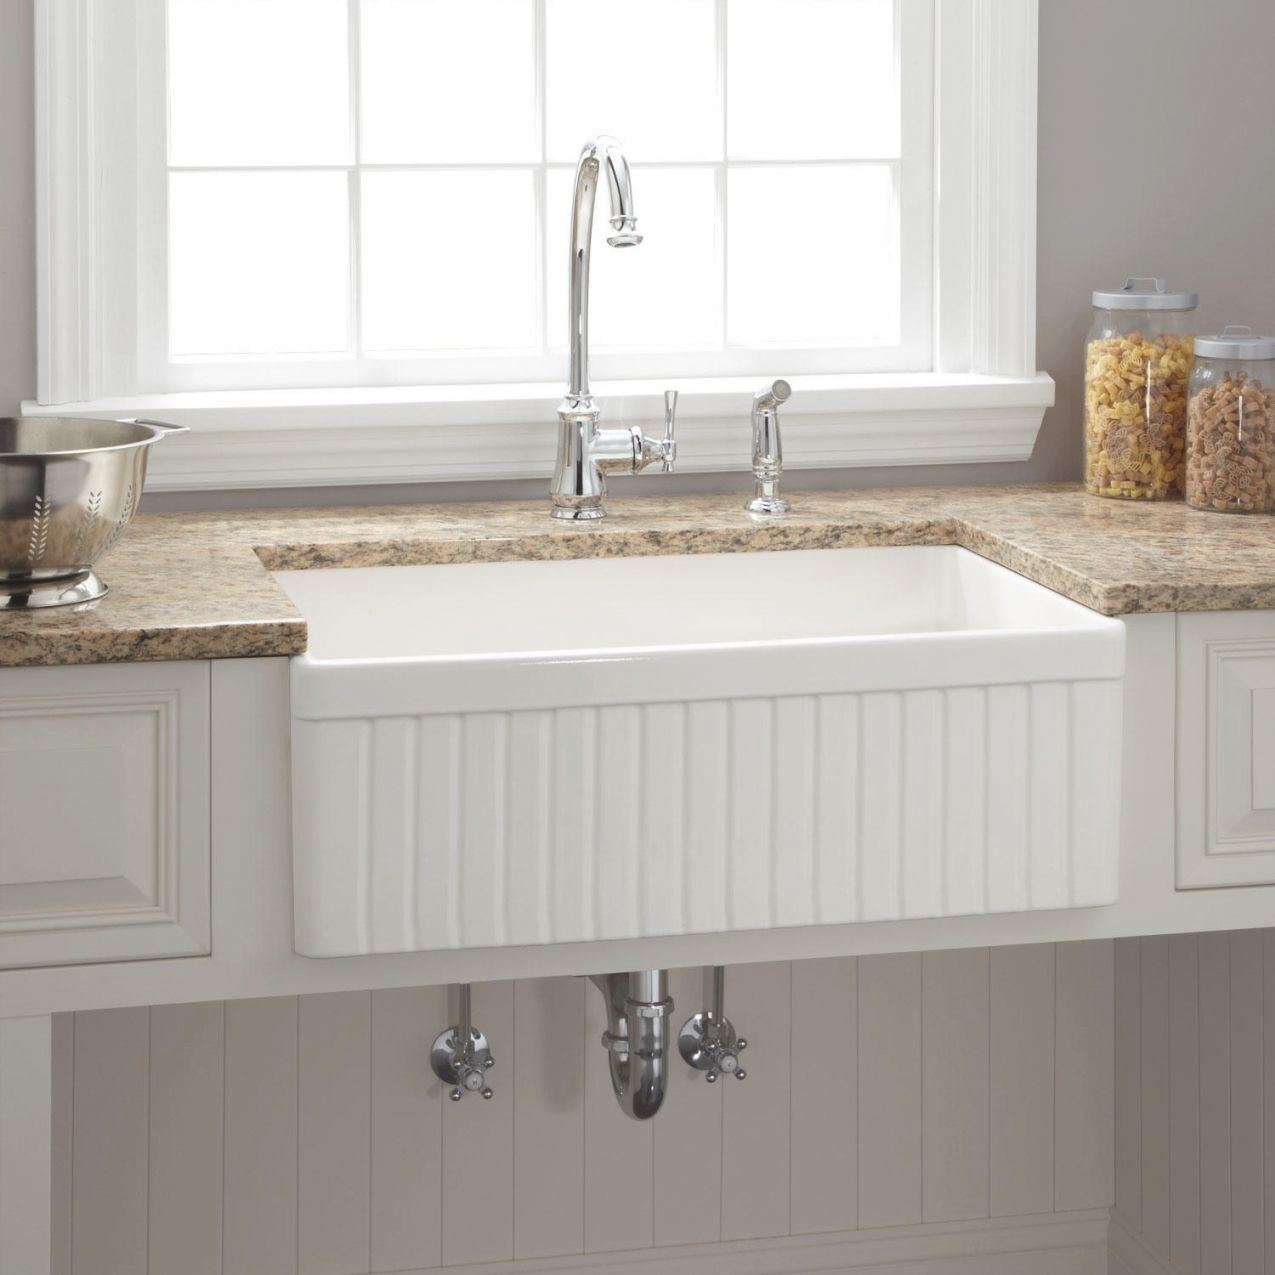 White Porcelain Apron Front Kitchen Sink In 2020 With Images